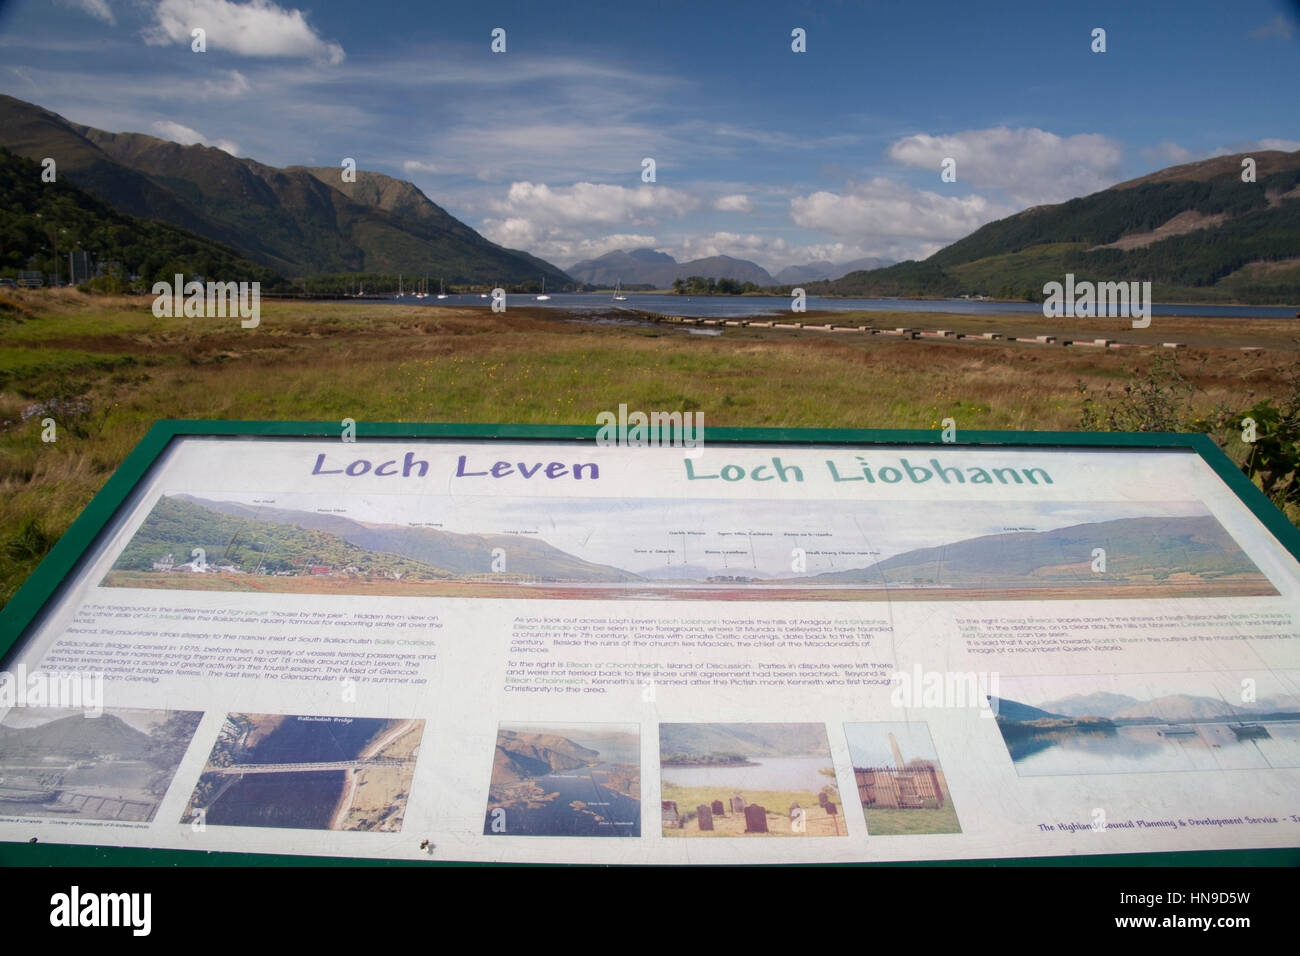 Loch Leven tourist sign at the edge of meadow beside the lake in highlands, scotland, uk - Stock Image